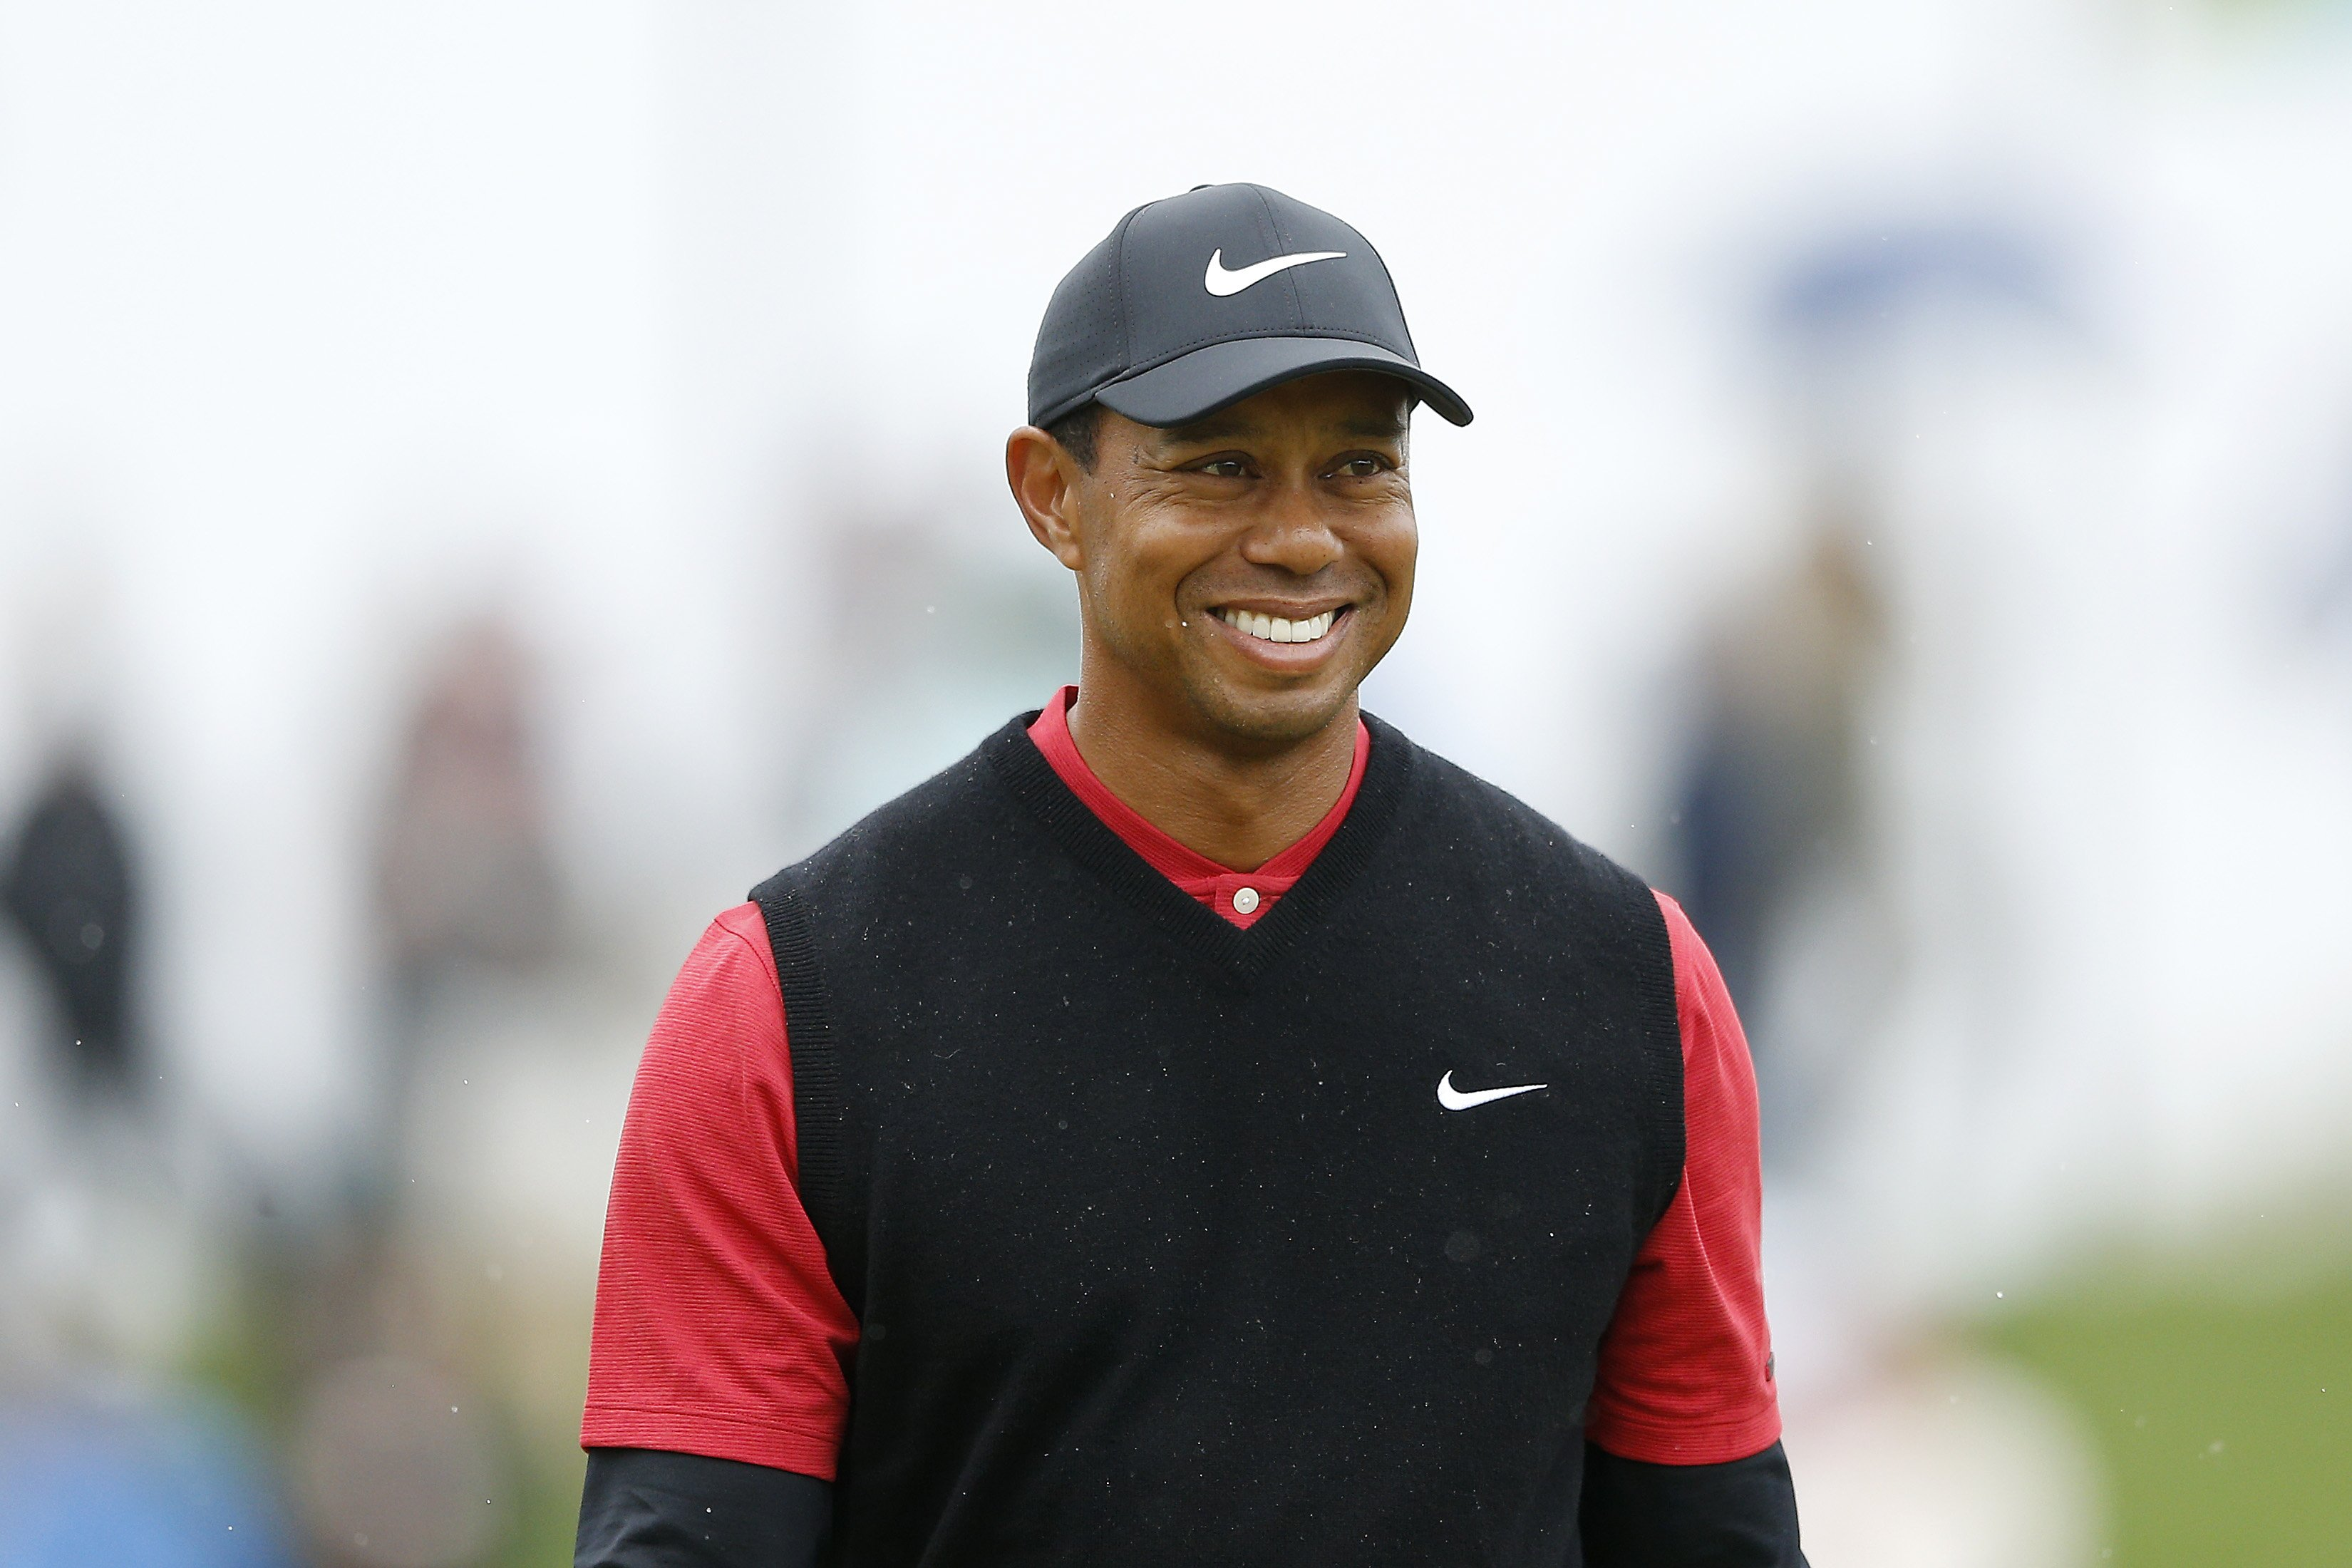 Tiger Woods at The PLAYERS Championship. March 17, 2019. | Photo: GettyImages